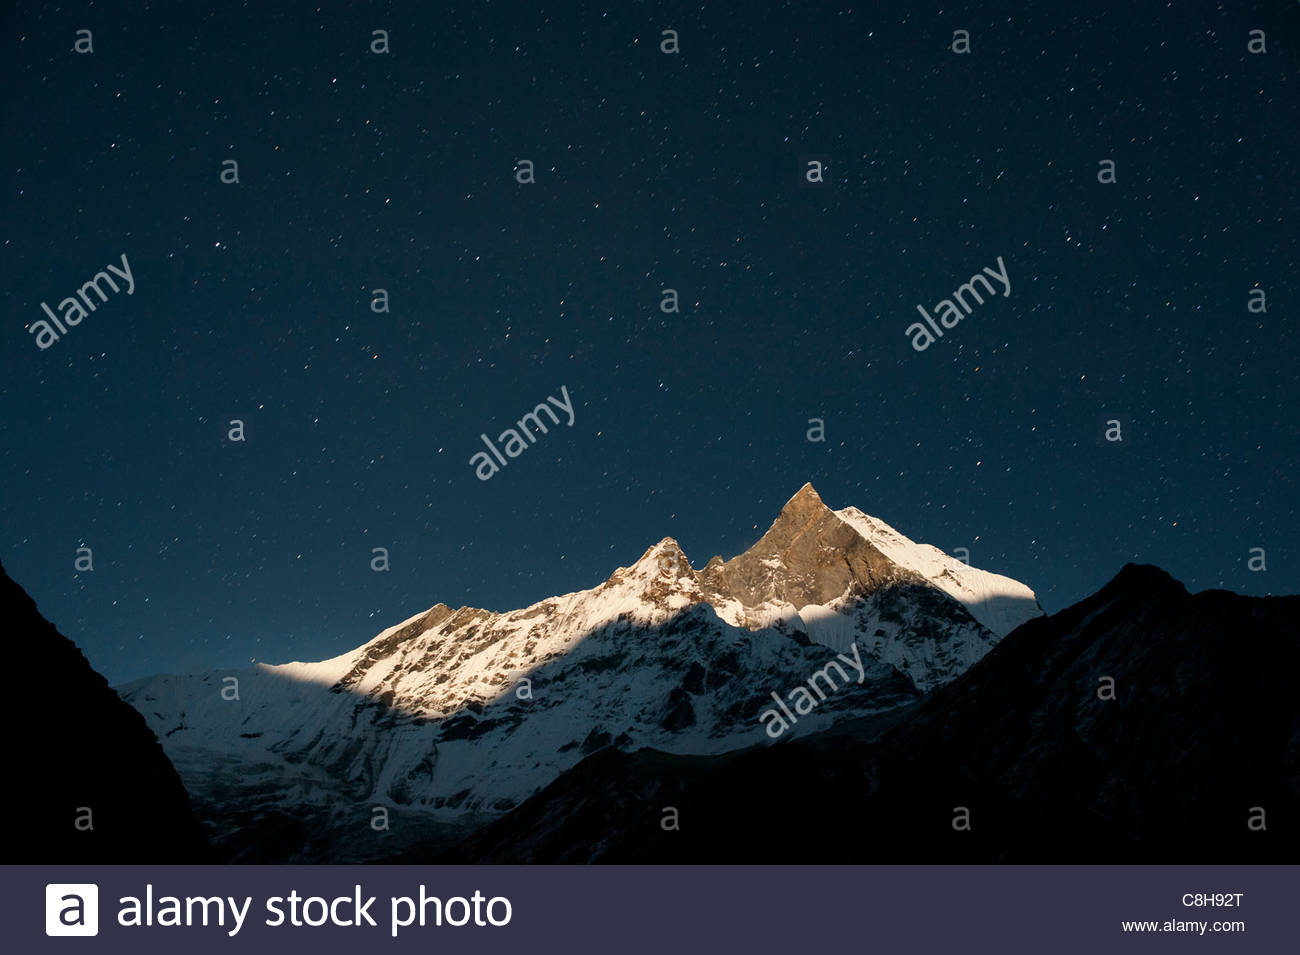 Machhapuchhare better known as the 'Fishtail' mountain by moonlight. - Stock Image